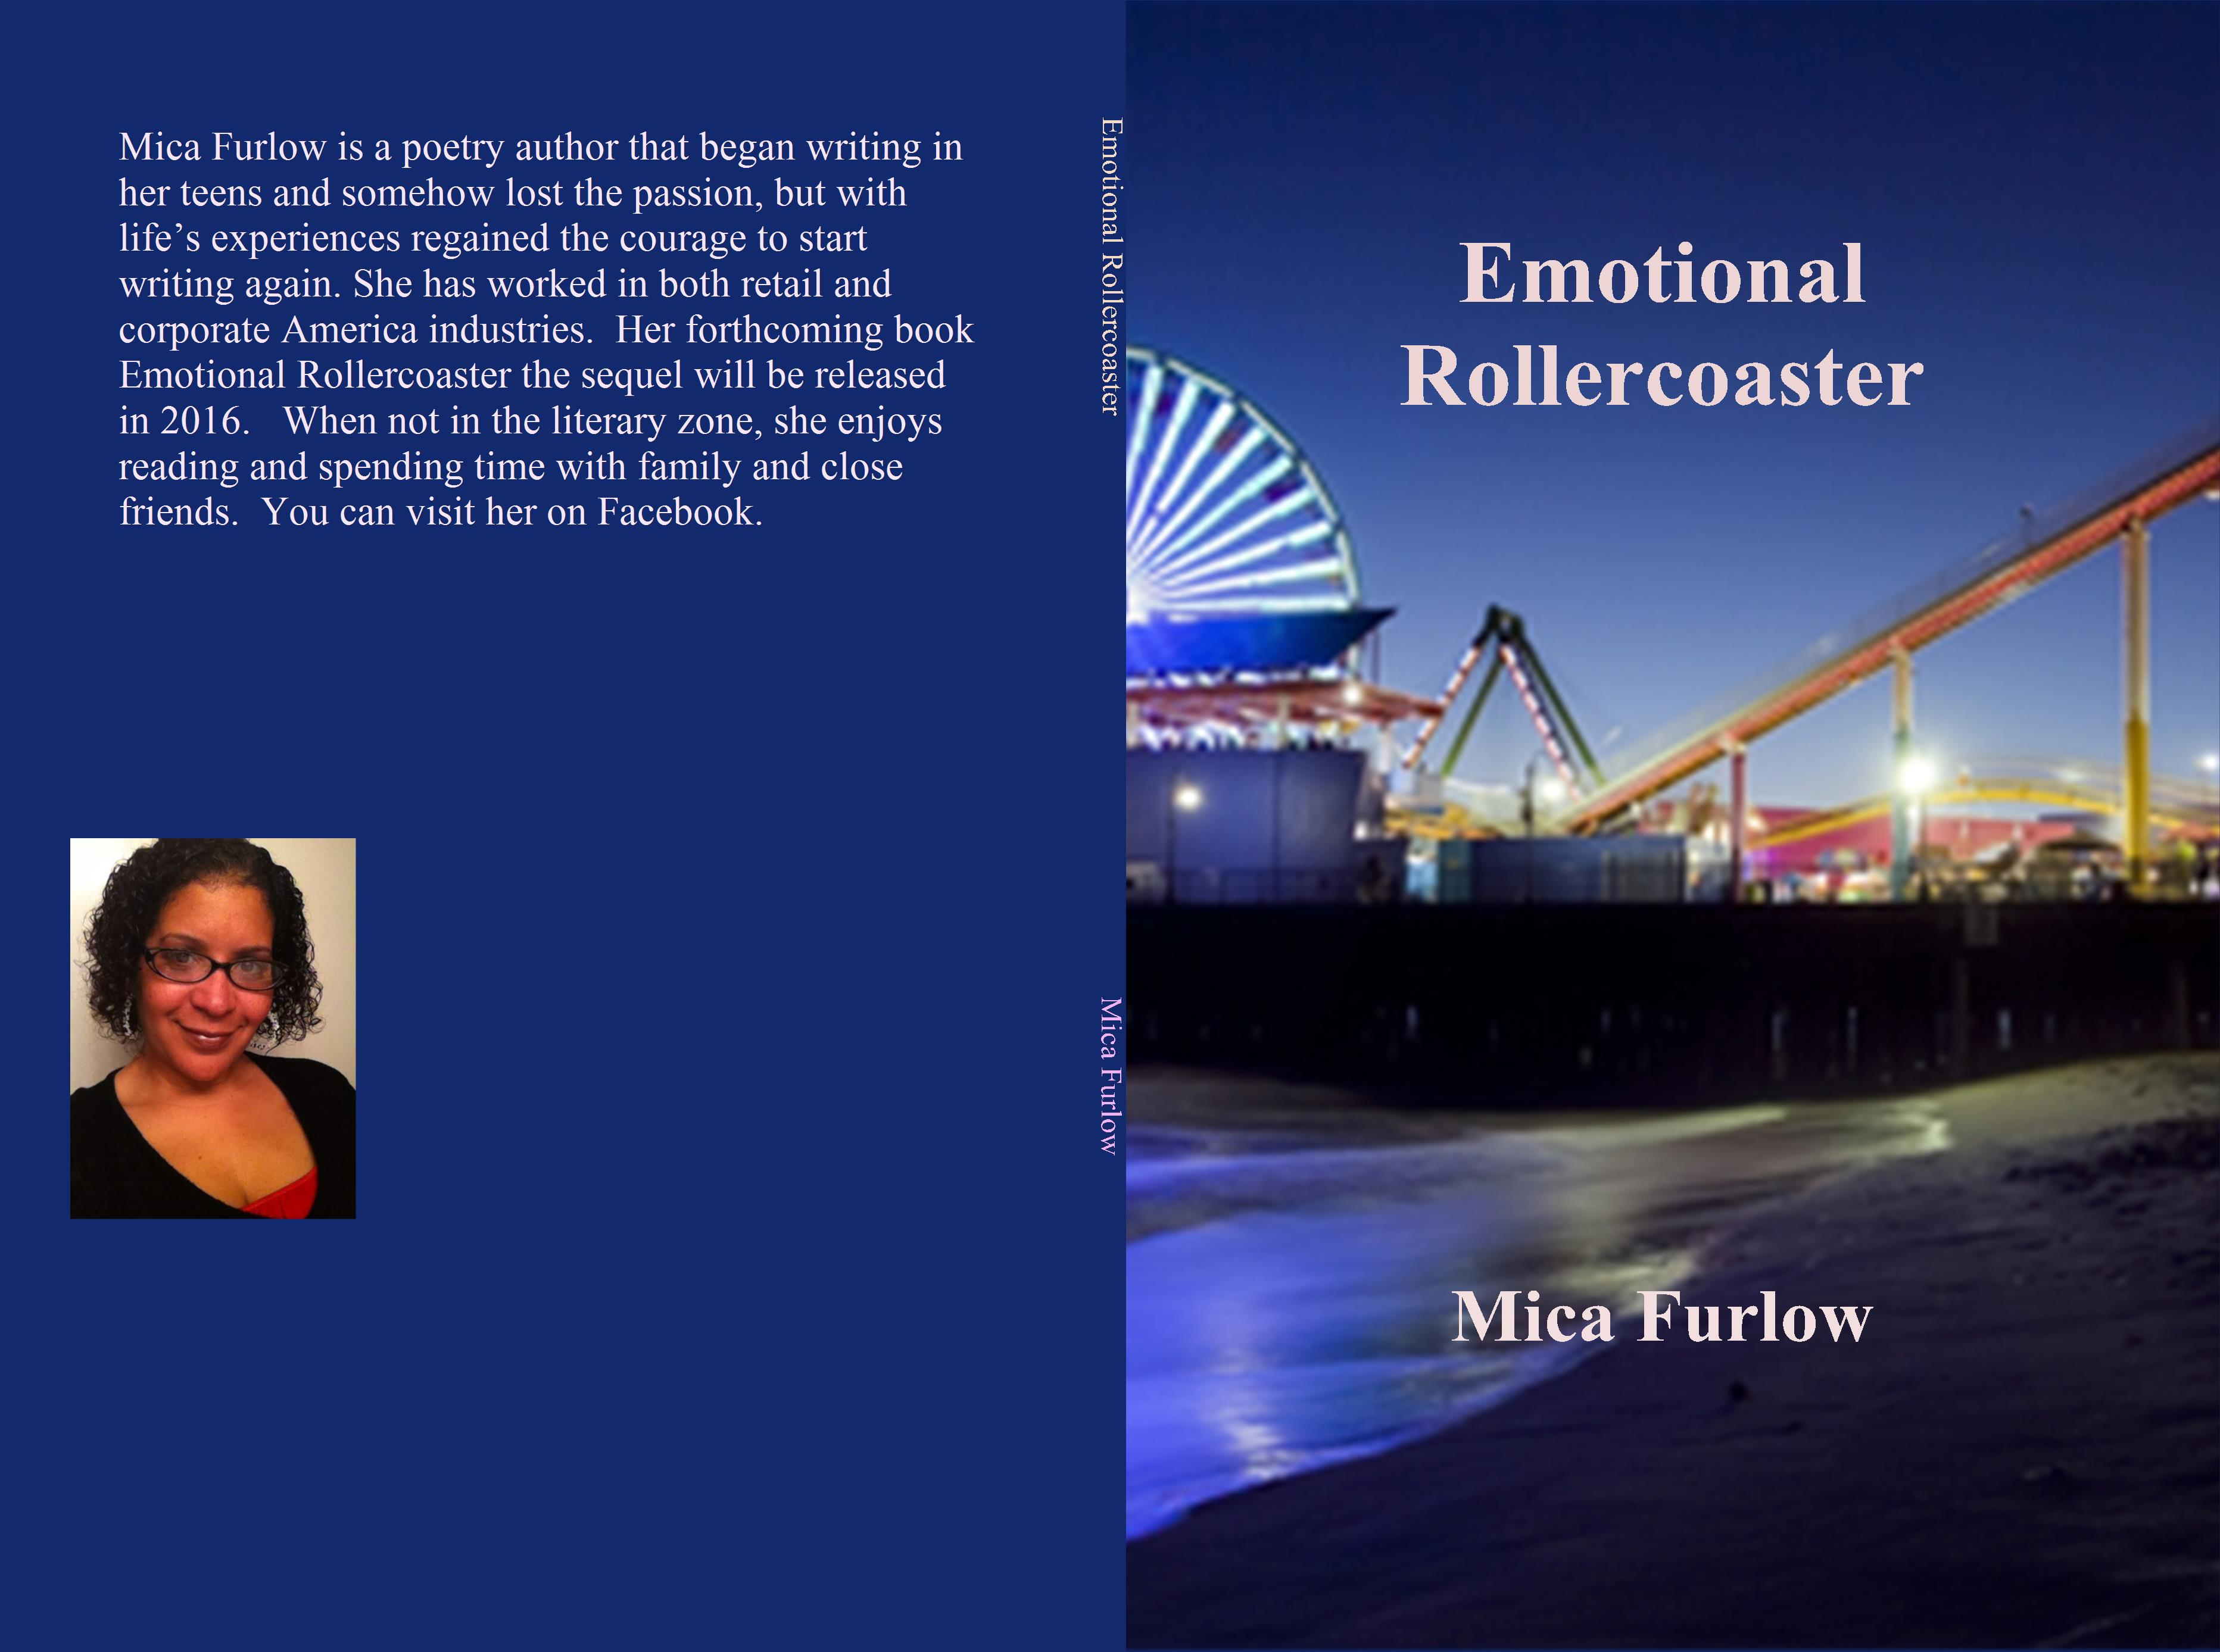 Emotional Rollercoaster cover image